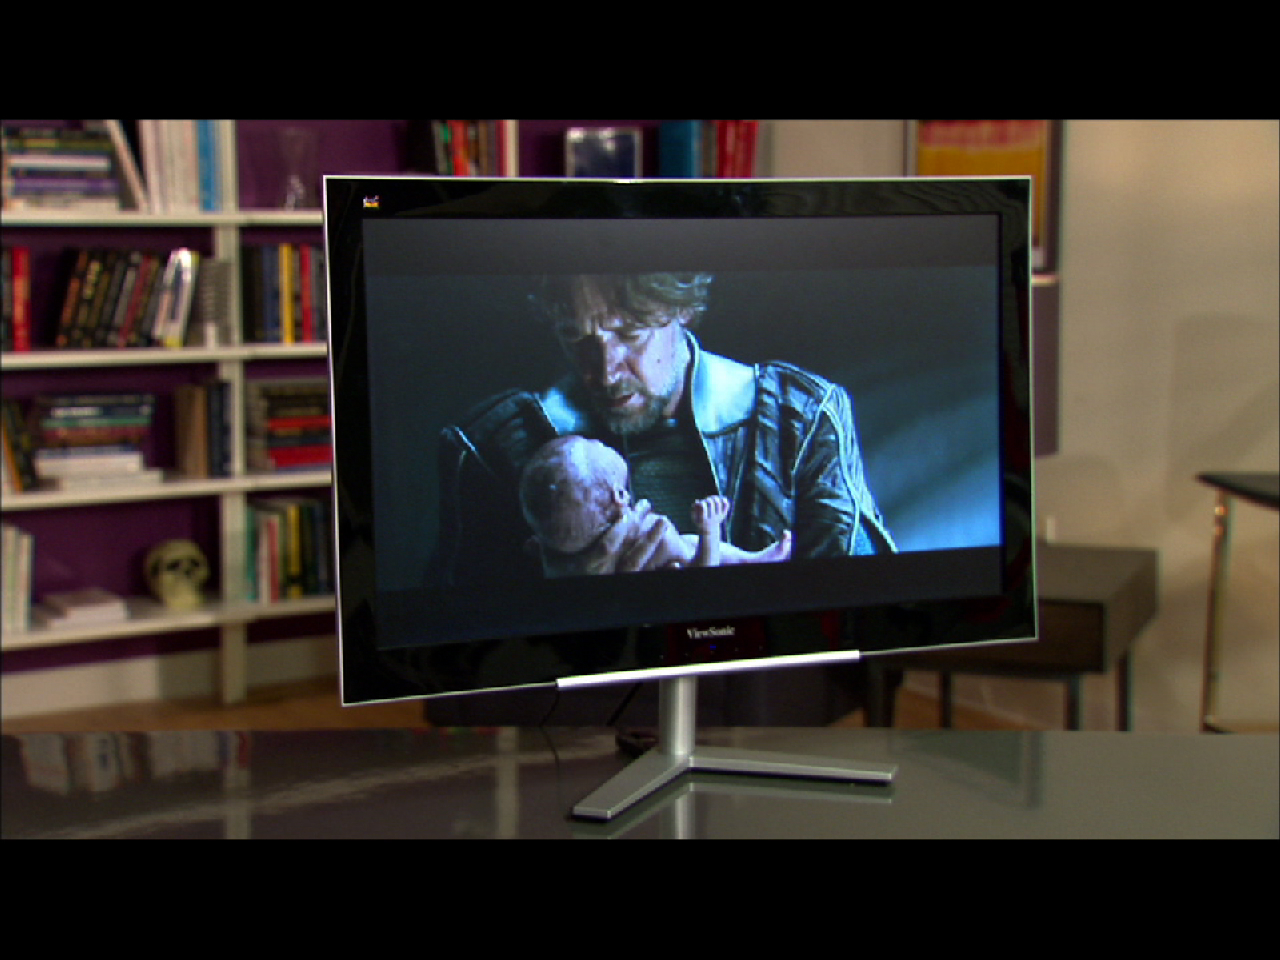 Video: Despite a wobbly stand, the Viewsonic VX2460H-LED succeeds thanks to its low price